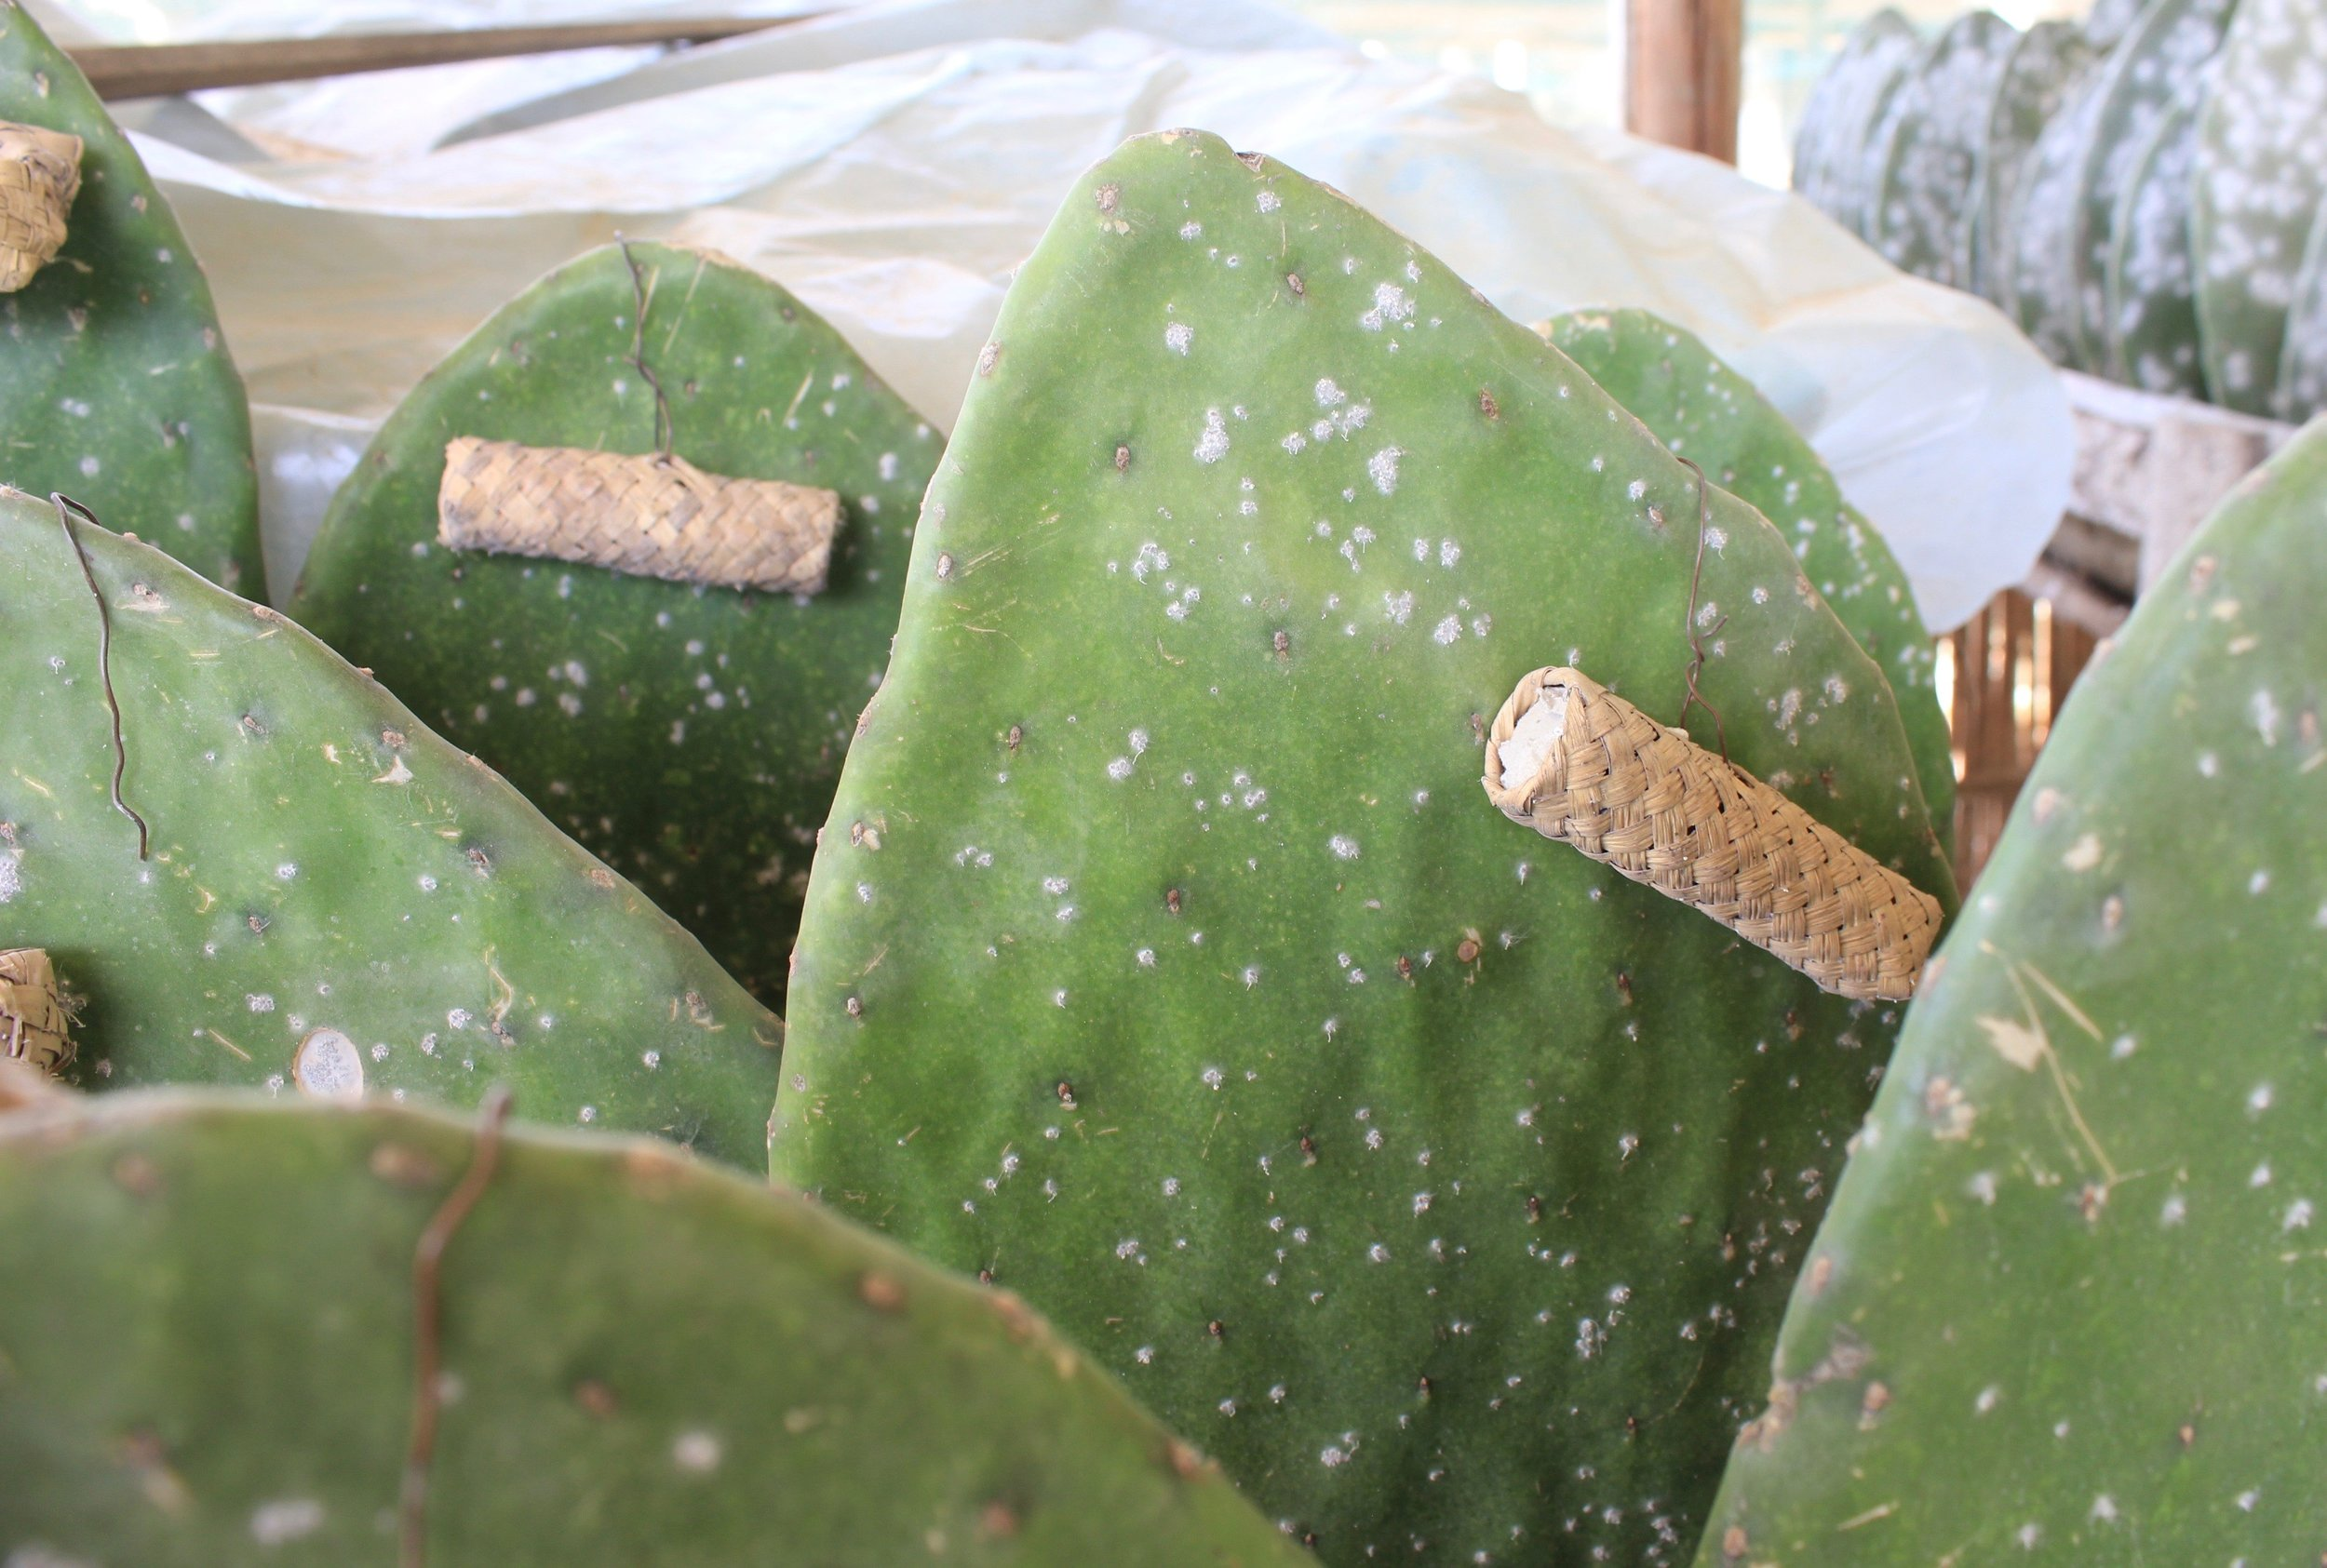 Cactus paddles showing early signs of cochineal infestation